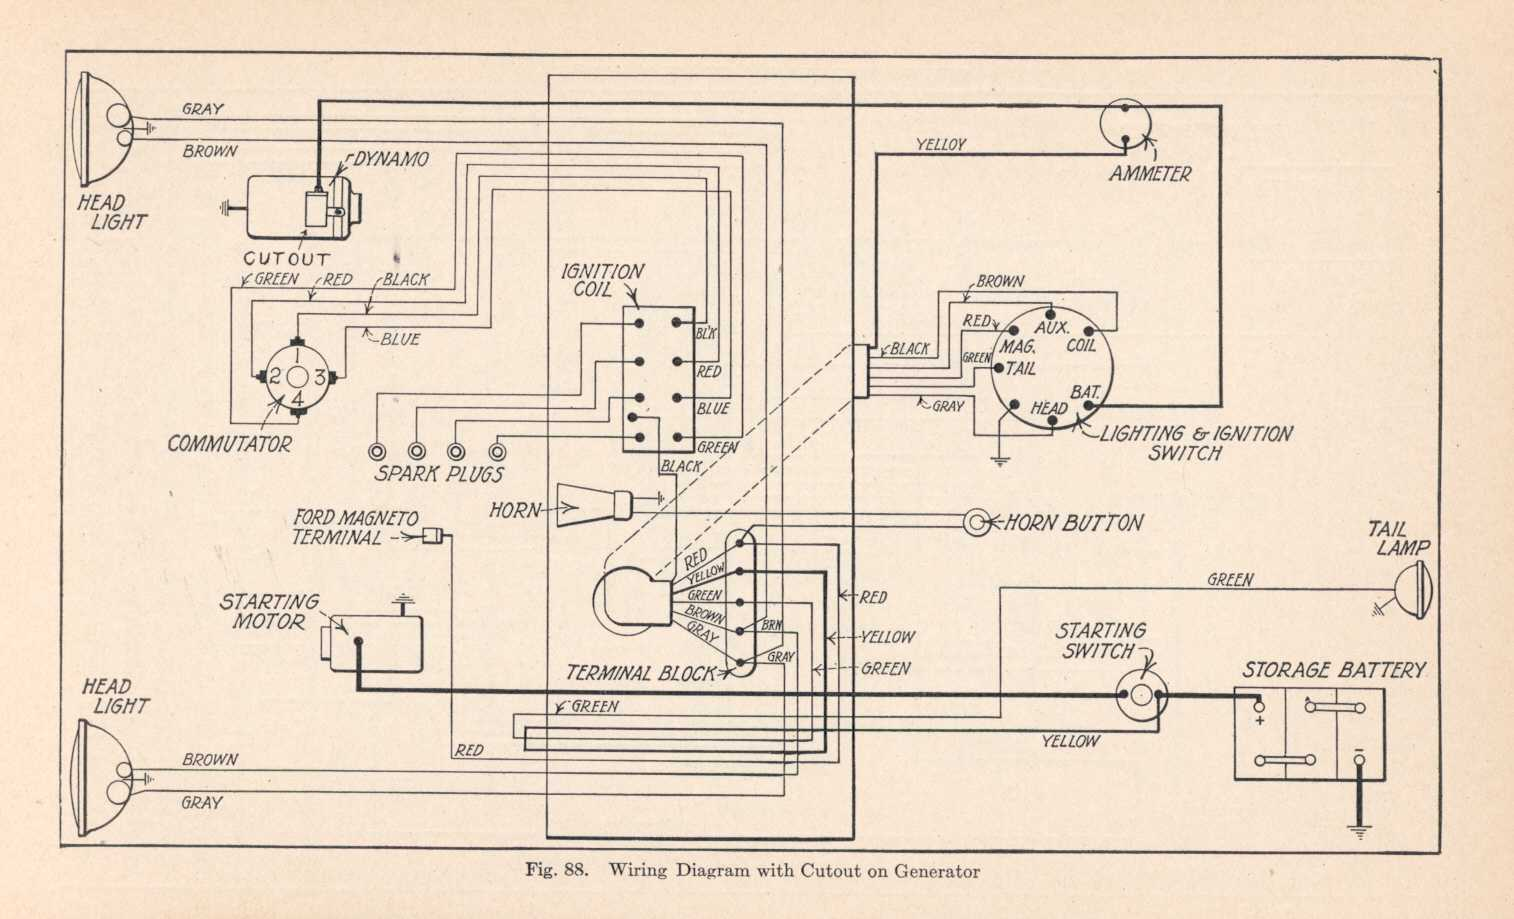 Model A Wiring Generator Trusted Diagram Wtw5640xw2 Whirlpool Schematic T Ford Forum Amp Meter Help Needed Rh Mtfca Com Headlight 1930